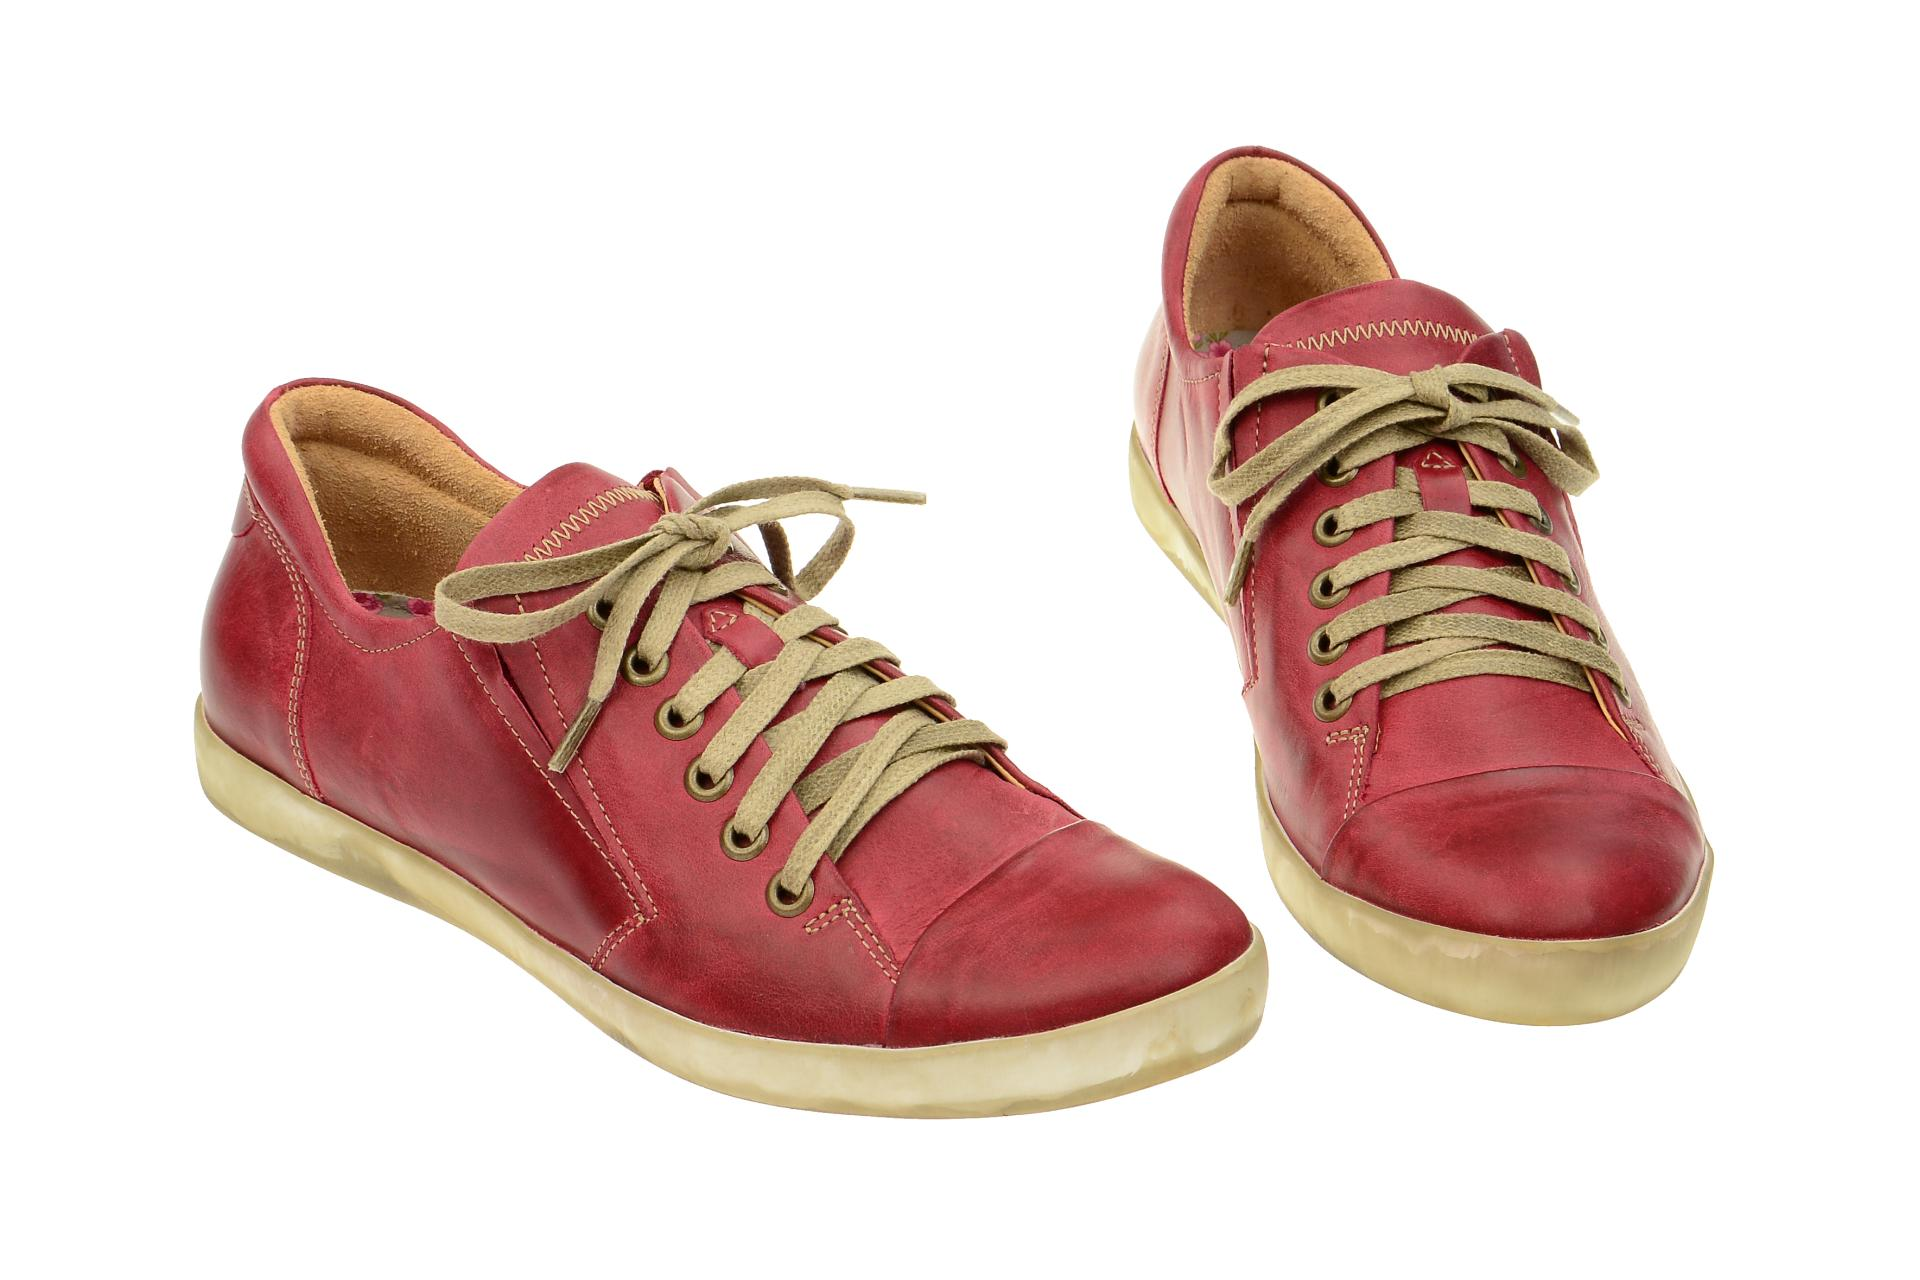 think seas schuhe rot sneaker gr 38 schuhhaus strauch shop. Black Bedroom Furniture Sets. Home Design Ideas